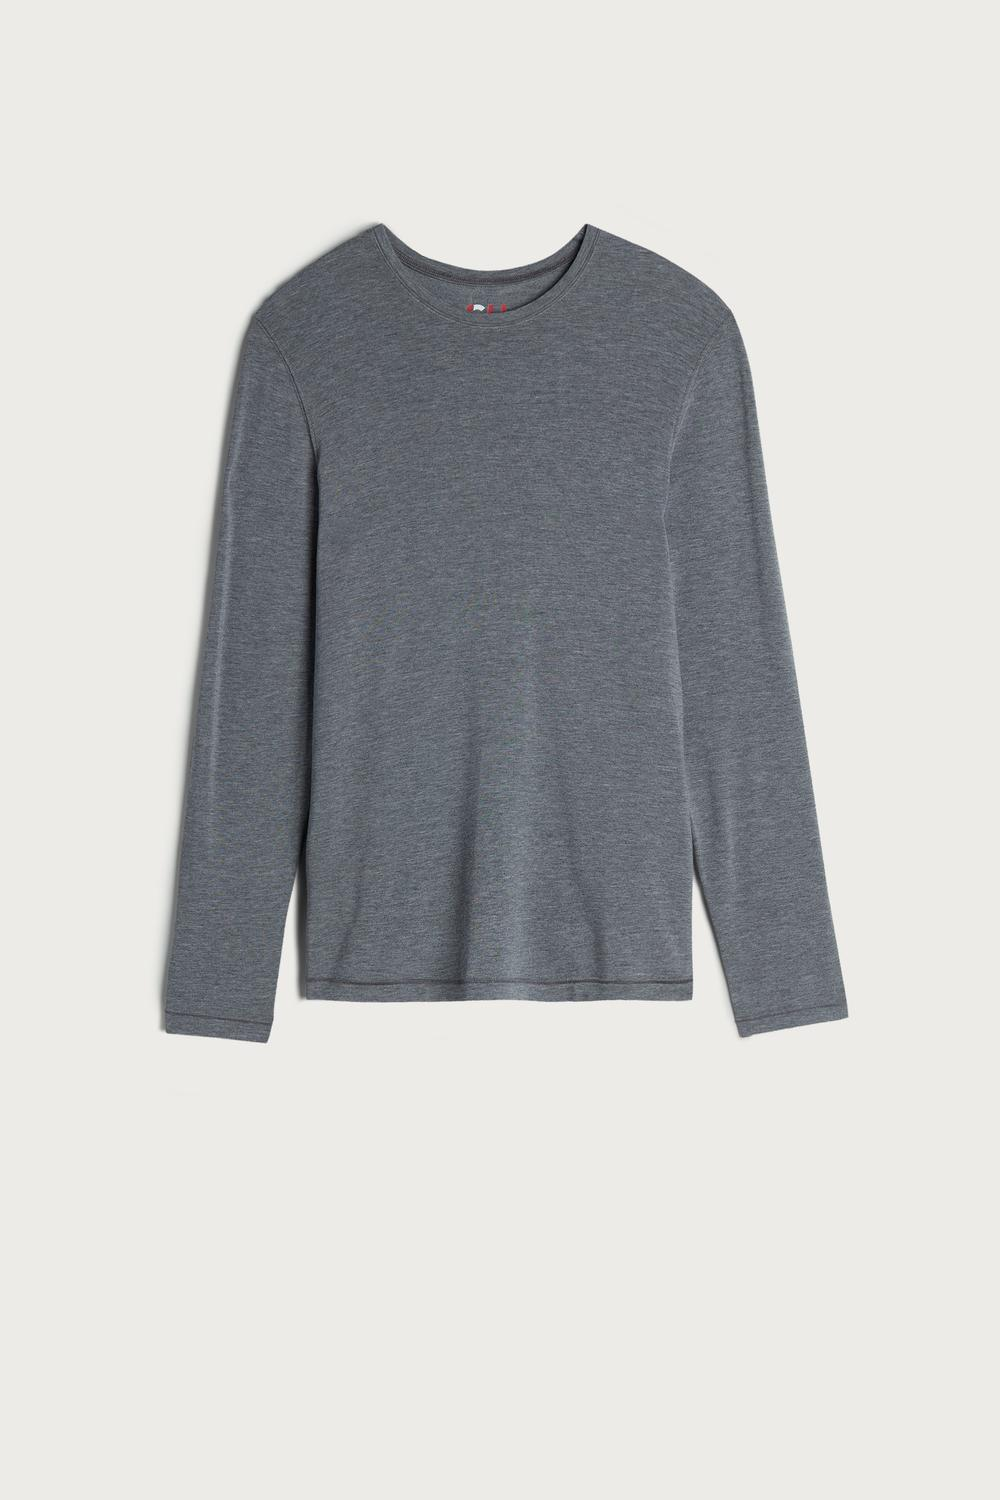 Long-Sleeve Modal-Cashmere Top